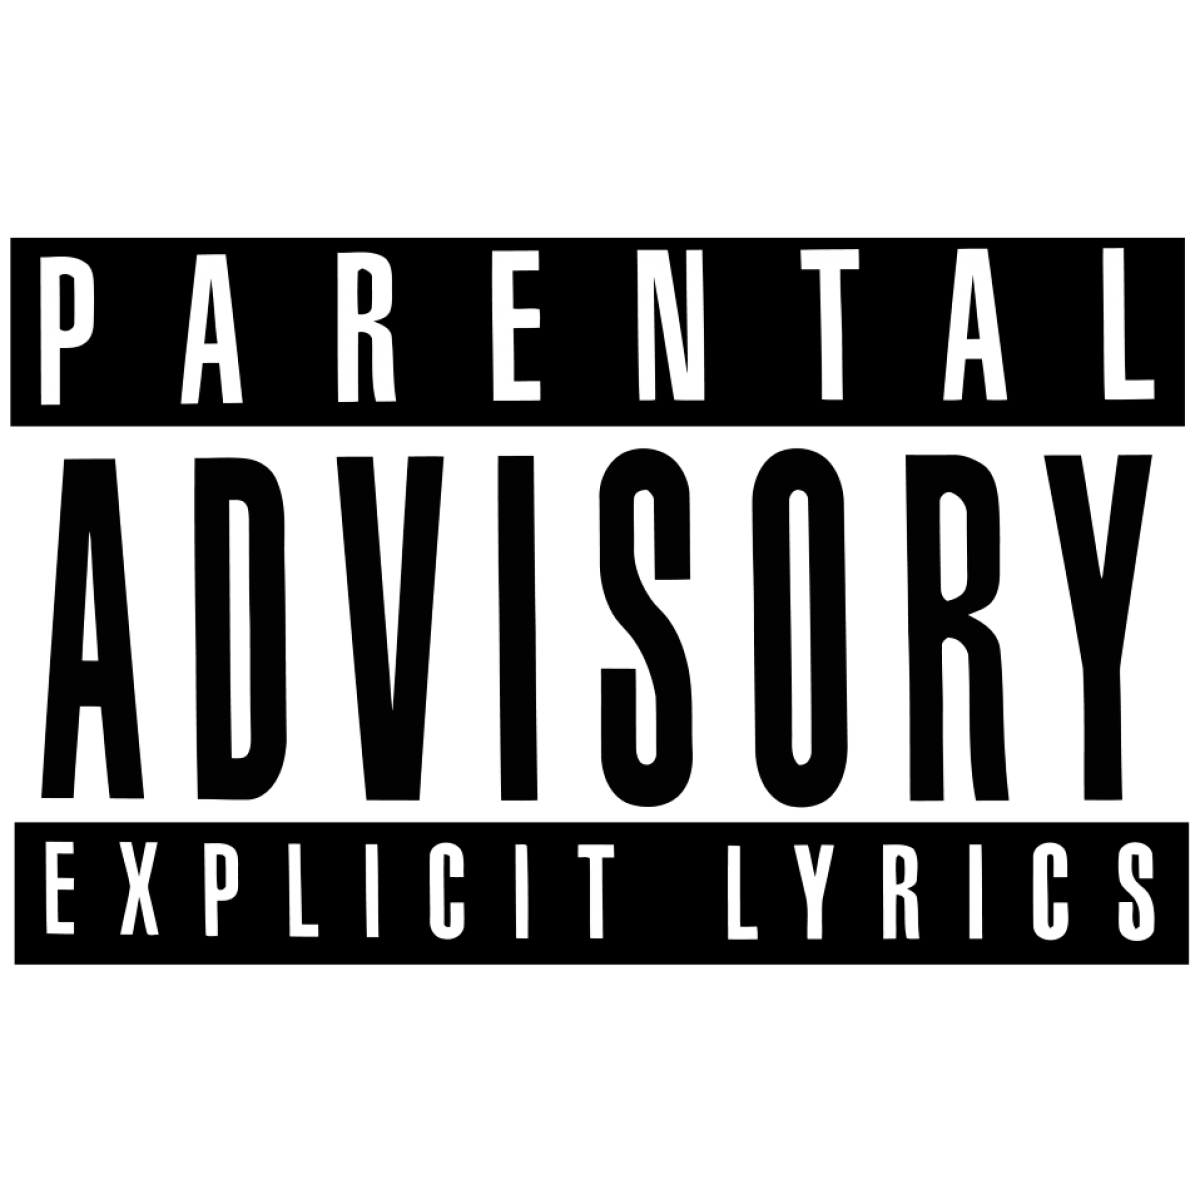 Parental advisory logo png. Transparent pictures free icons